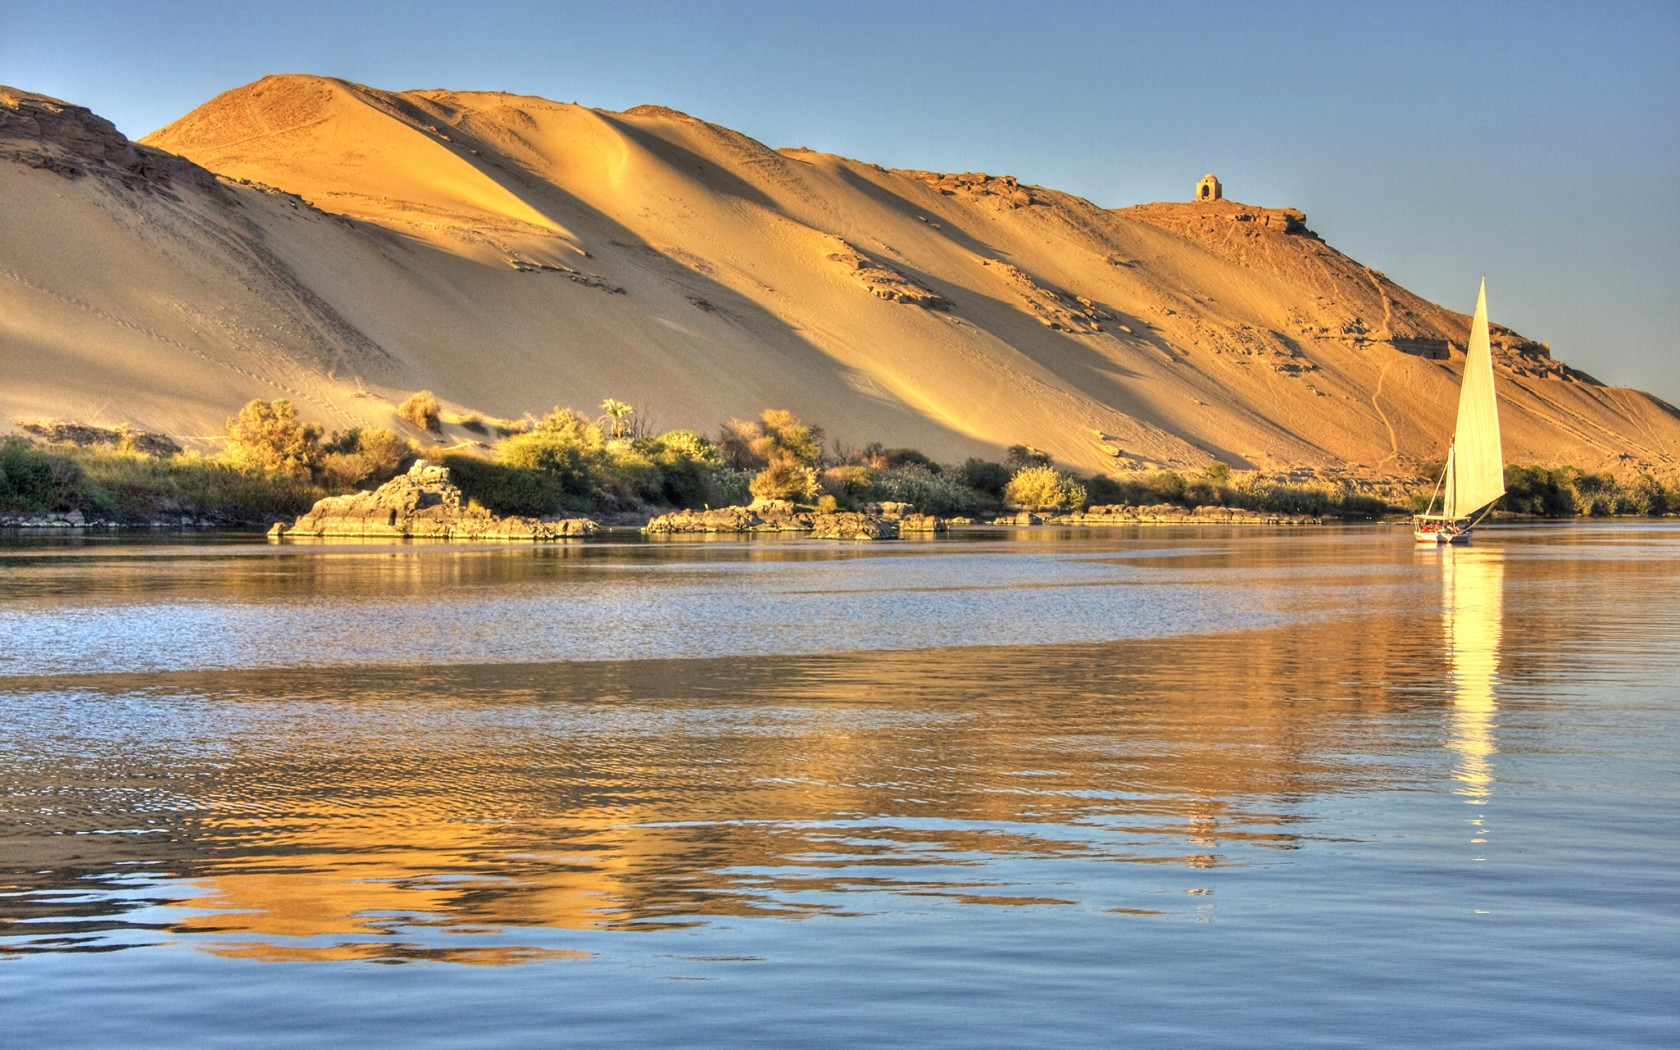 nile river free download wallpaper images picture